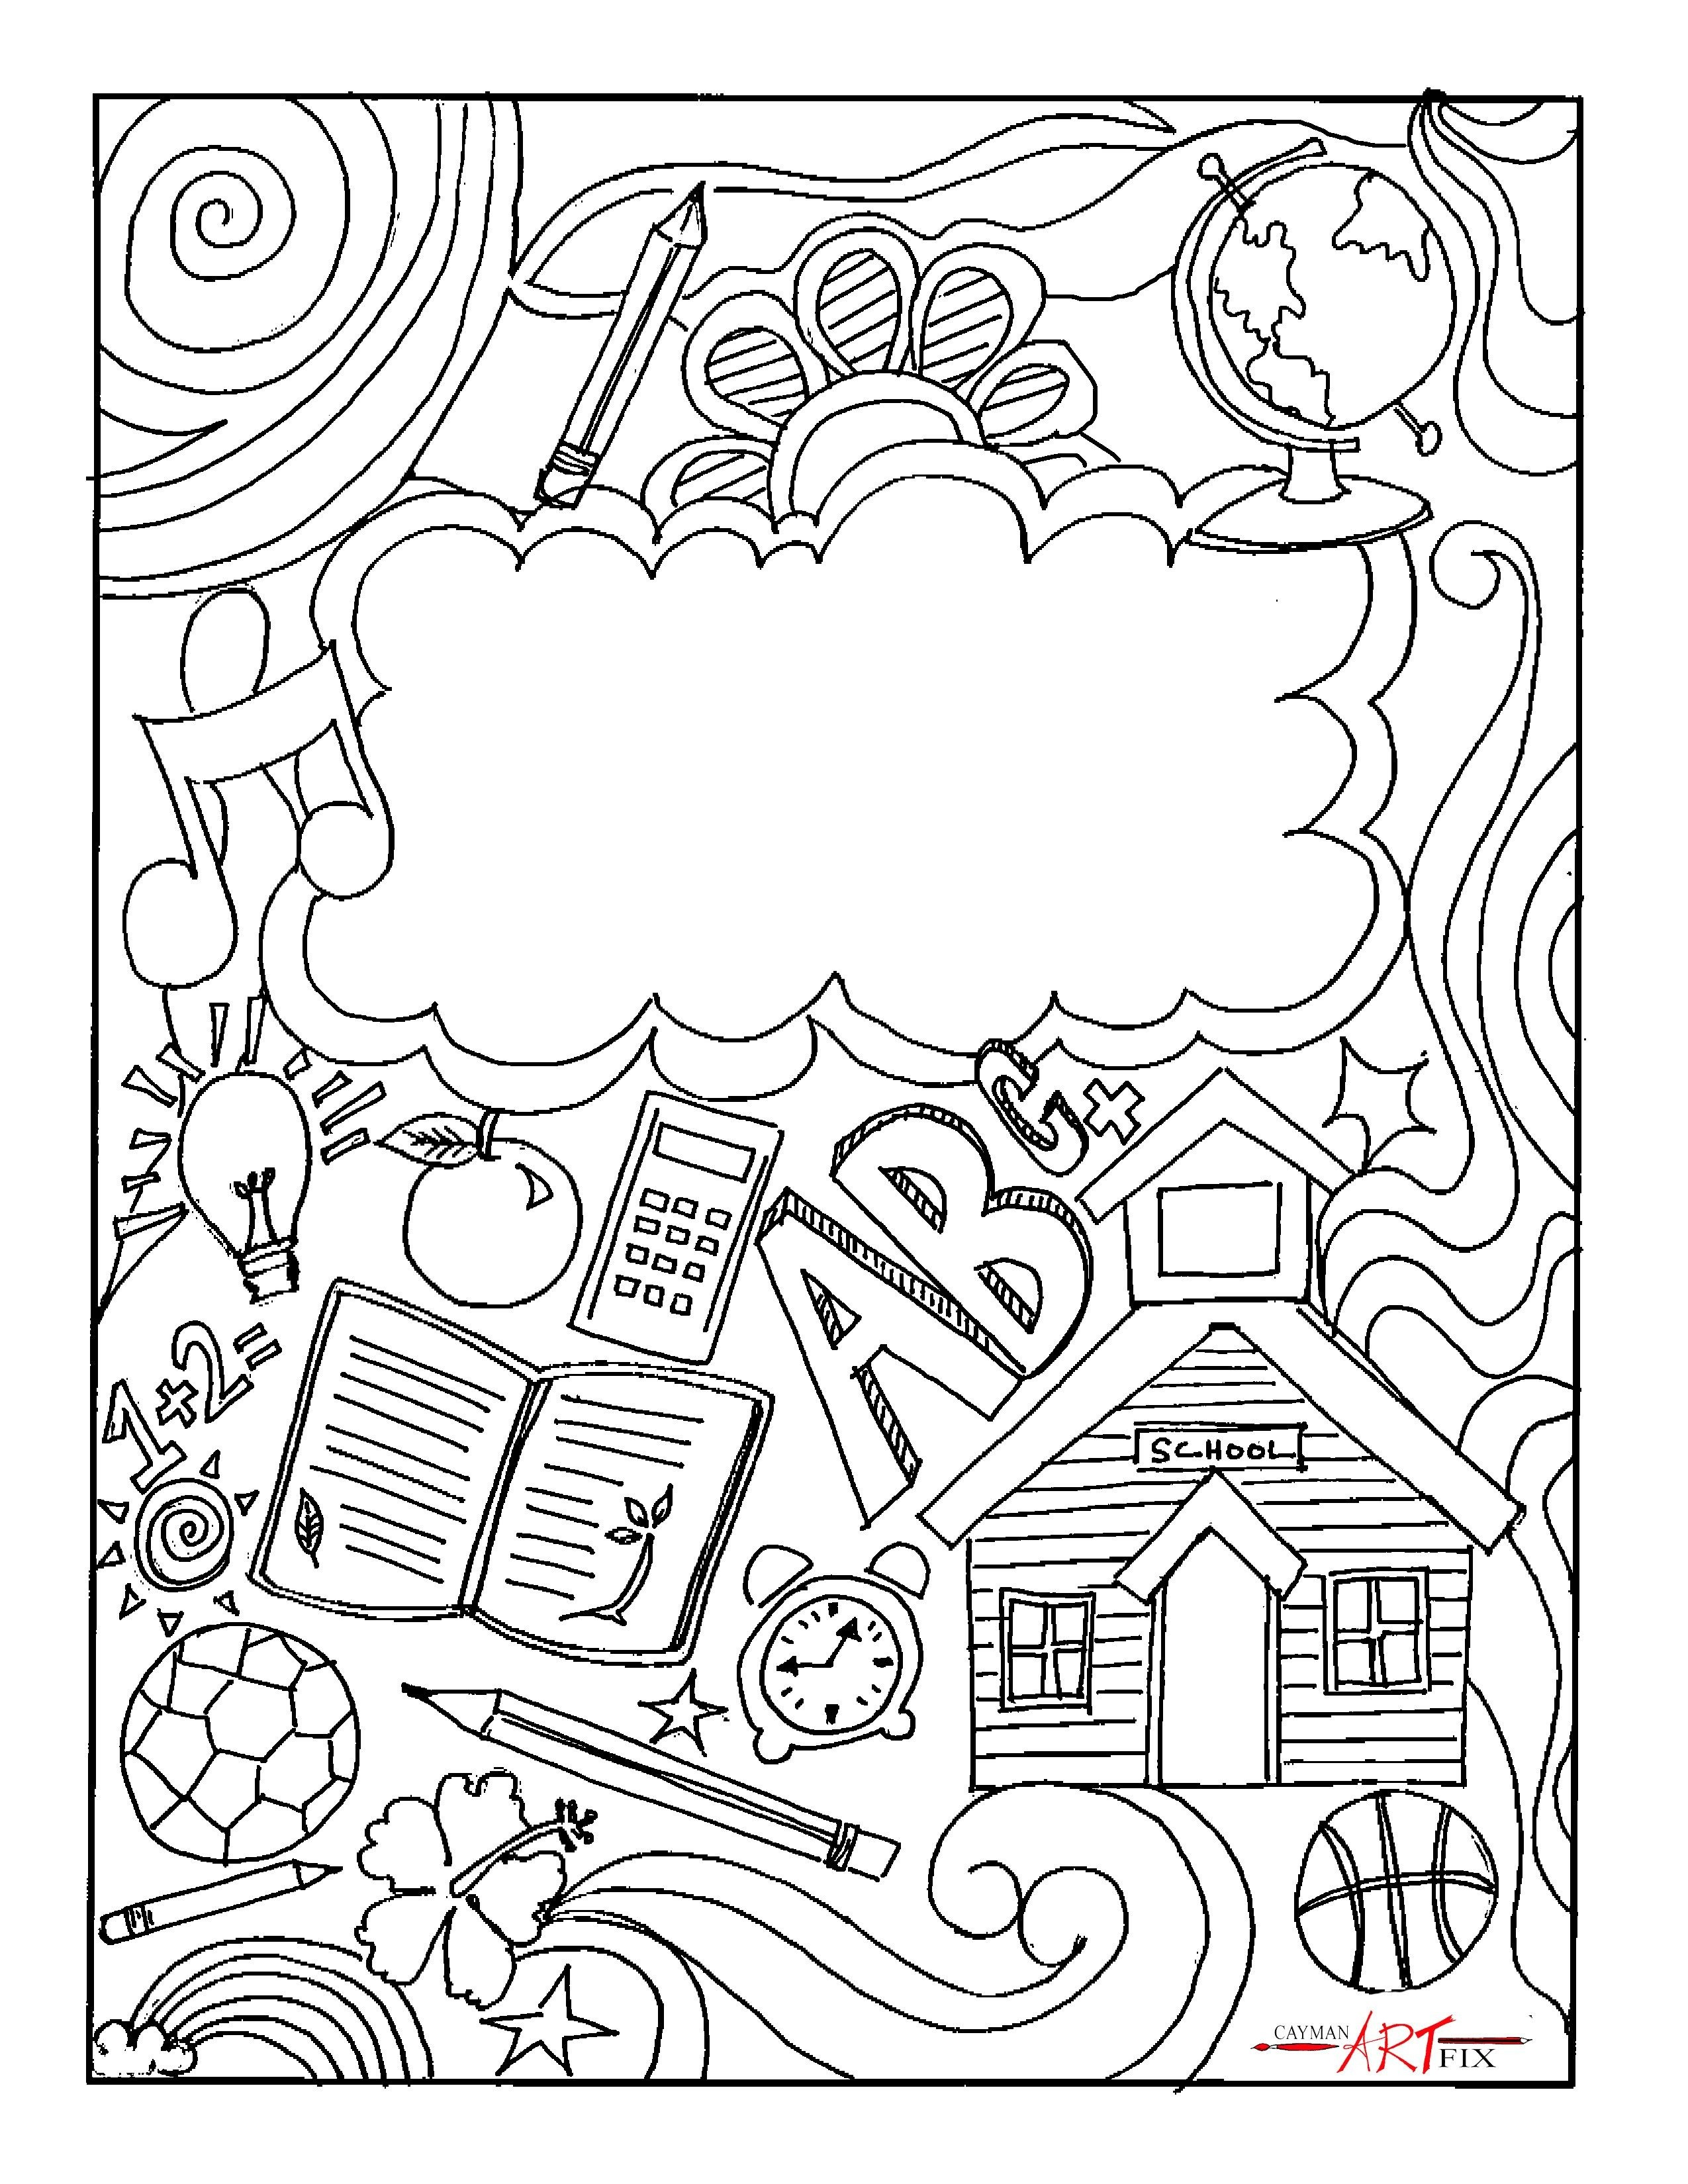 Binder Cover Coloring Page Binder Cover Printable Coloring Page - Free Printable Binder Covers To Color